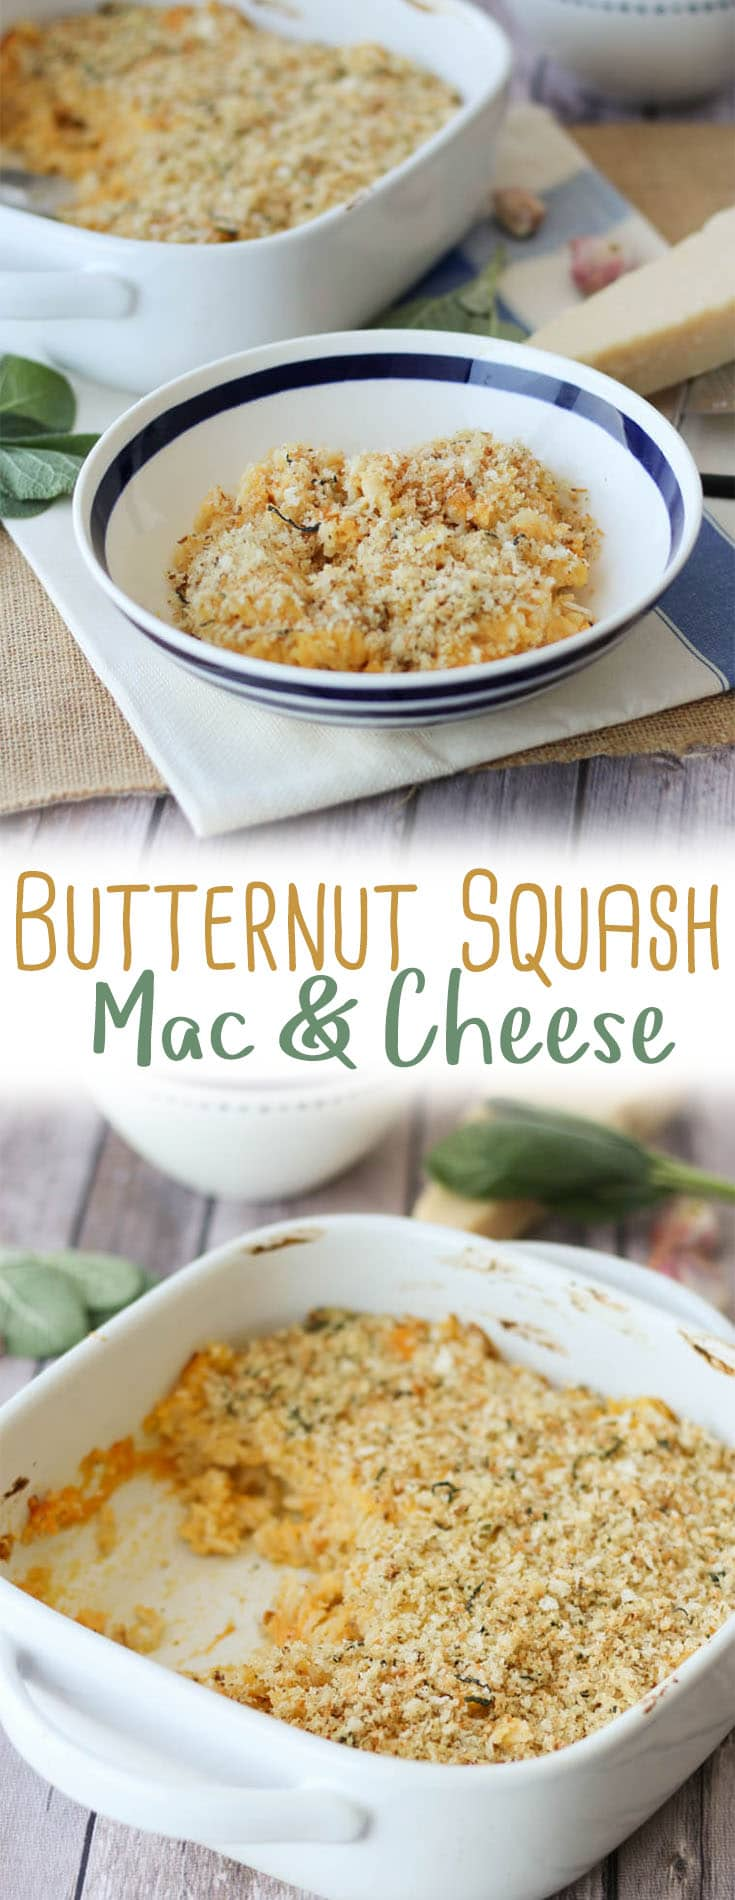 This healthy Butternut Squash Mac and Cheese features a sneaky mixture of whipped squash and low-cal cauliflower in place of the traditional butter-based roux.